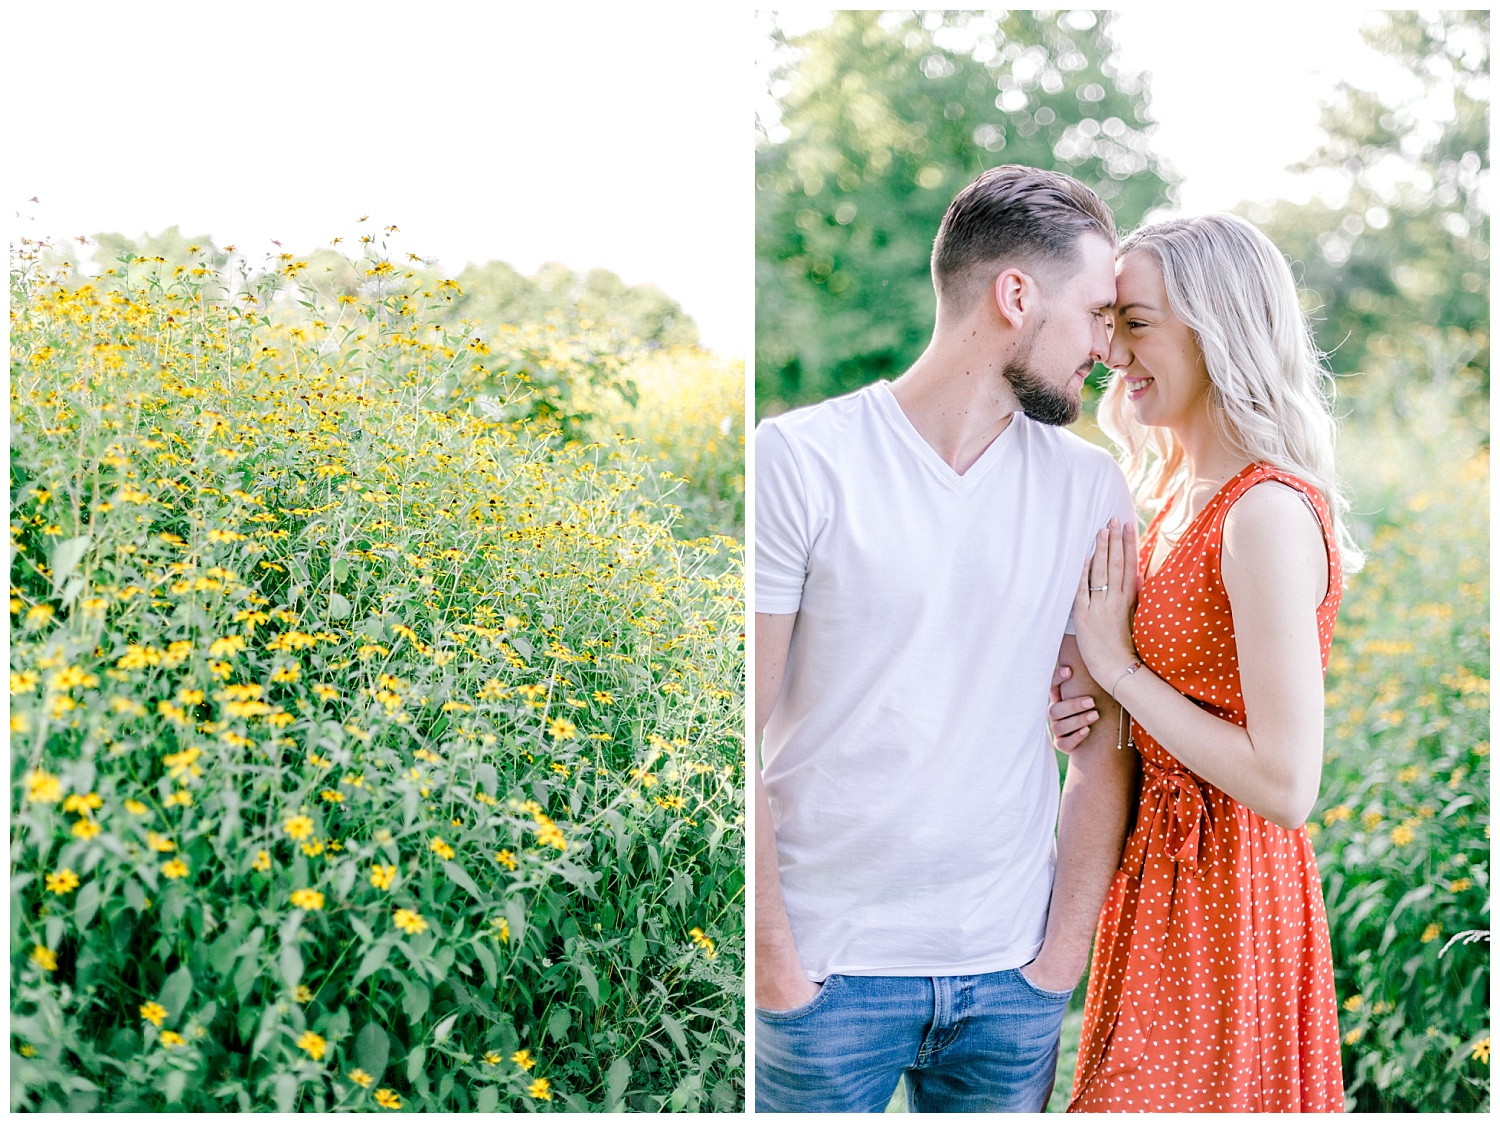 Blue Marsh Lake Reading Pennsylvania flower field golden hour engagement session by PA based wedding and lifestyle photographer Lytle photography_0001.jpg